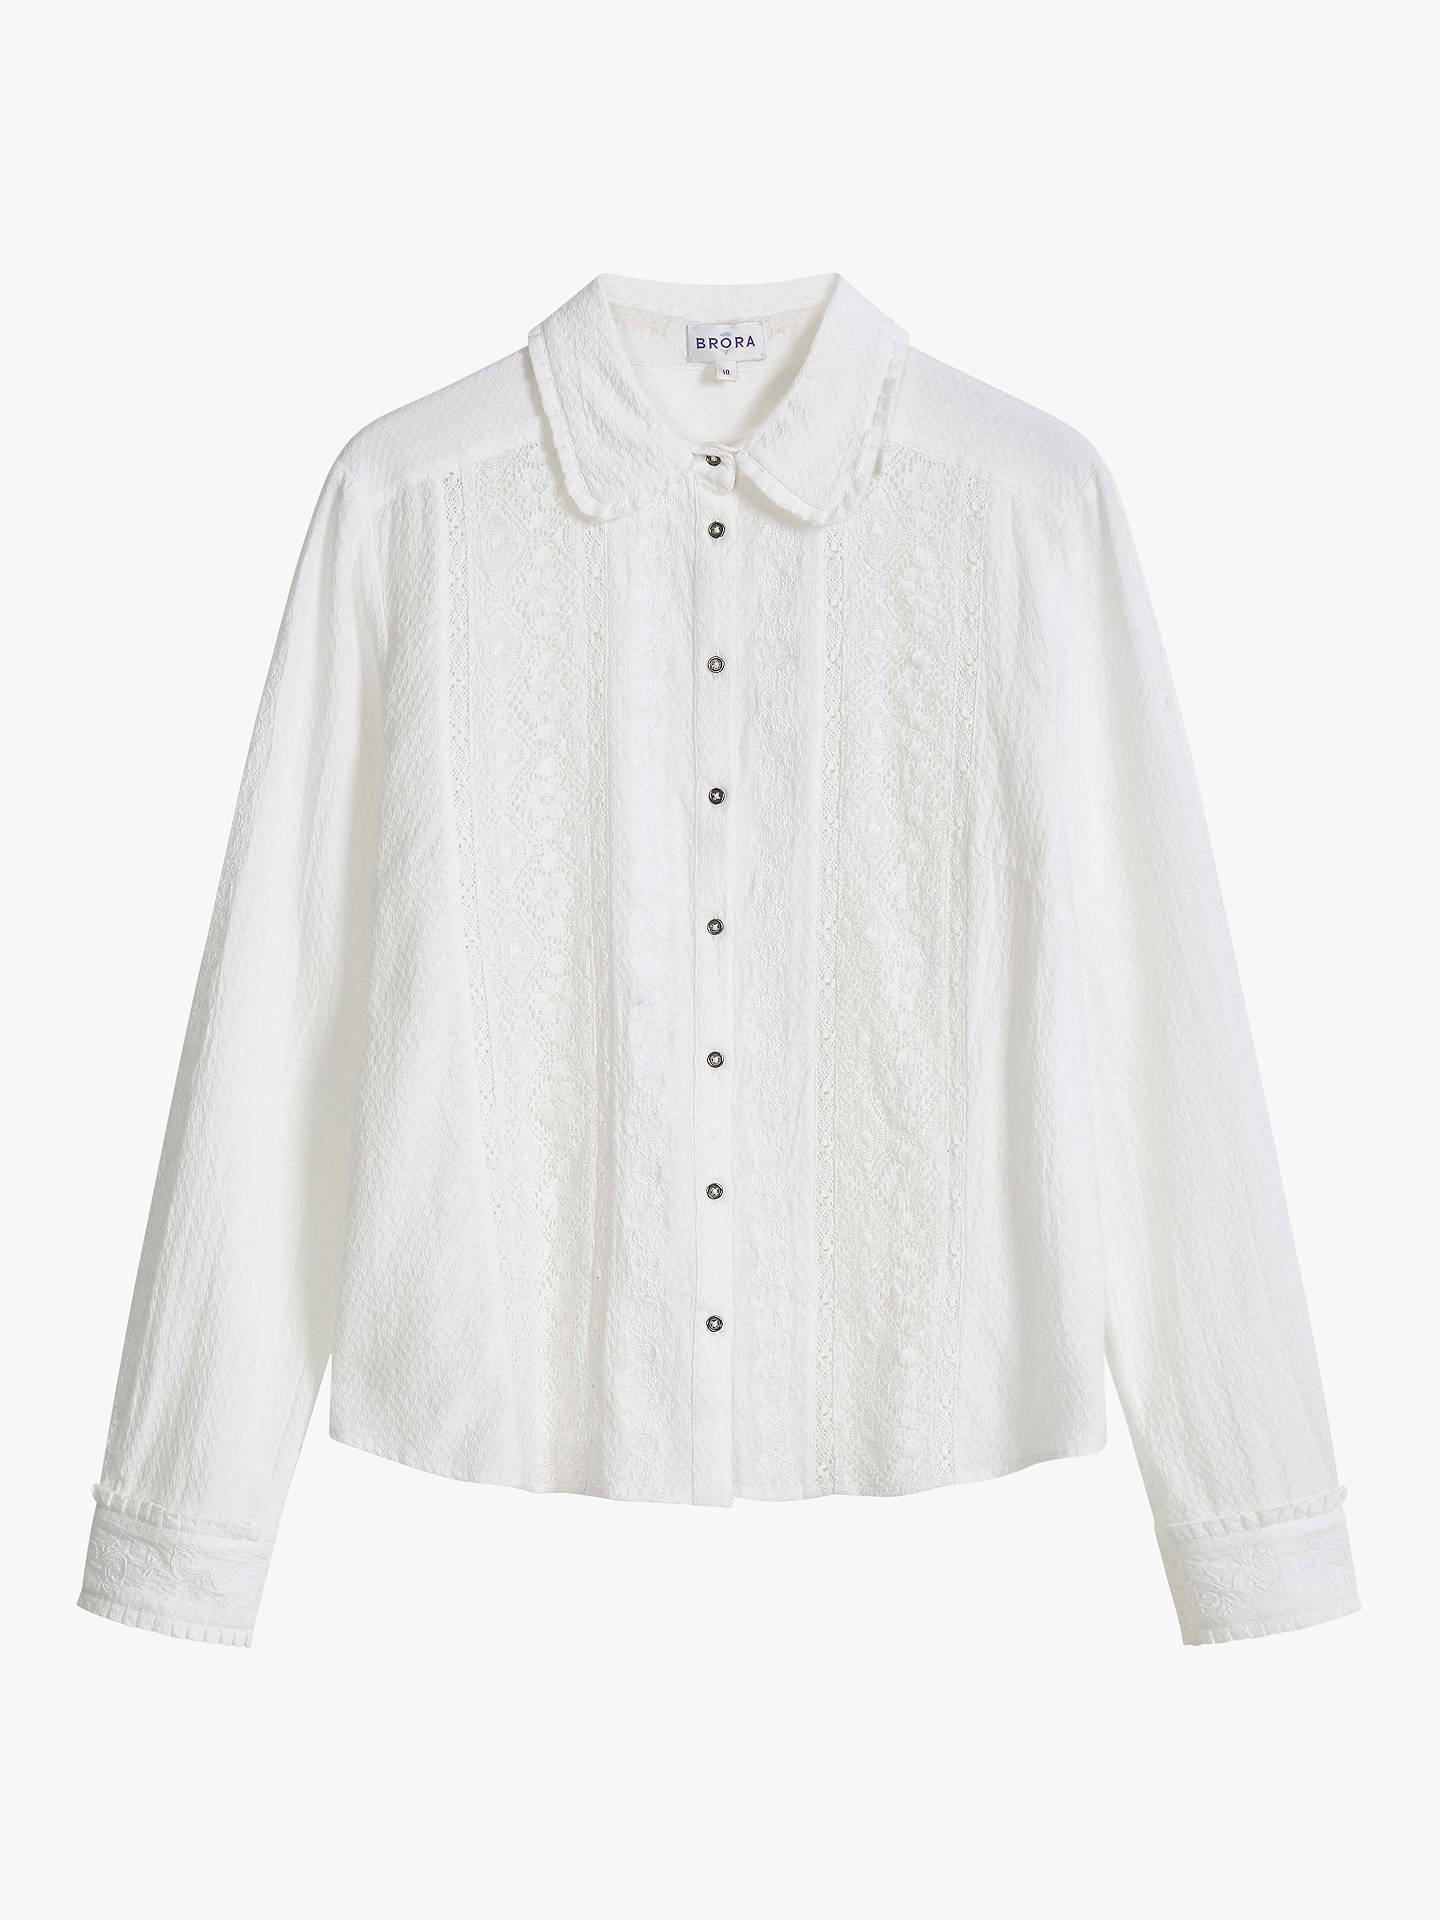 Buy Brora Lace Embroidered Blouse, White, 6 Online at johnlewis.com